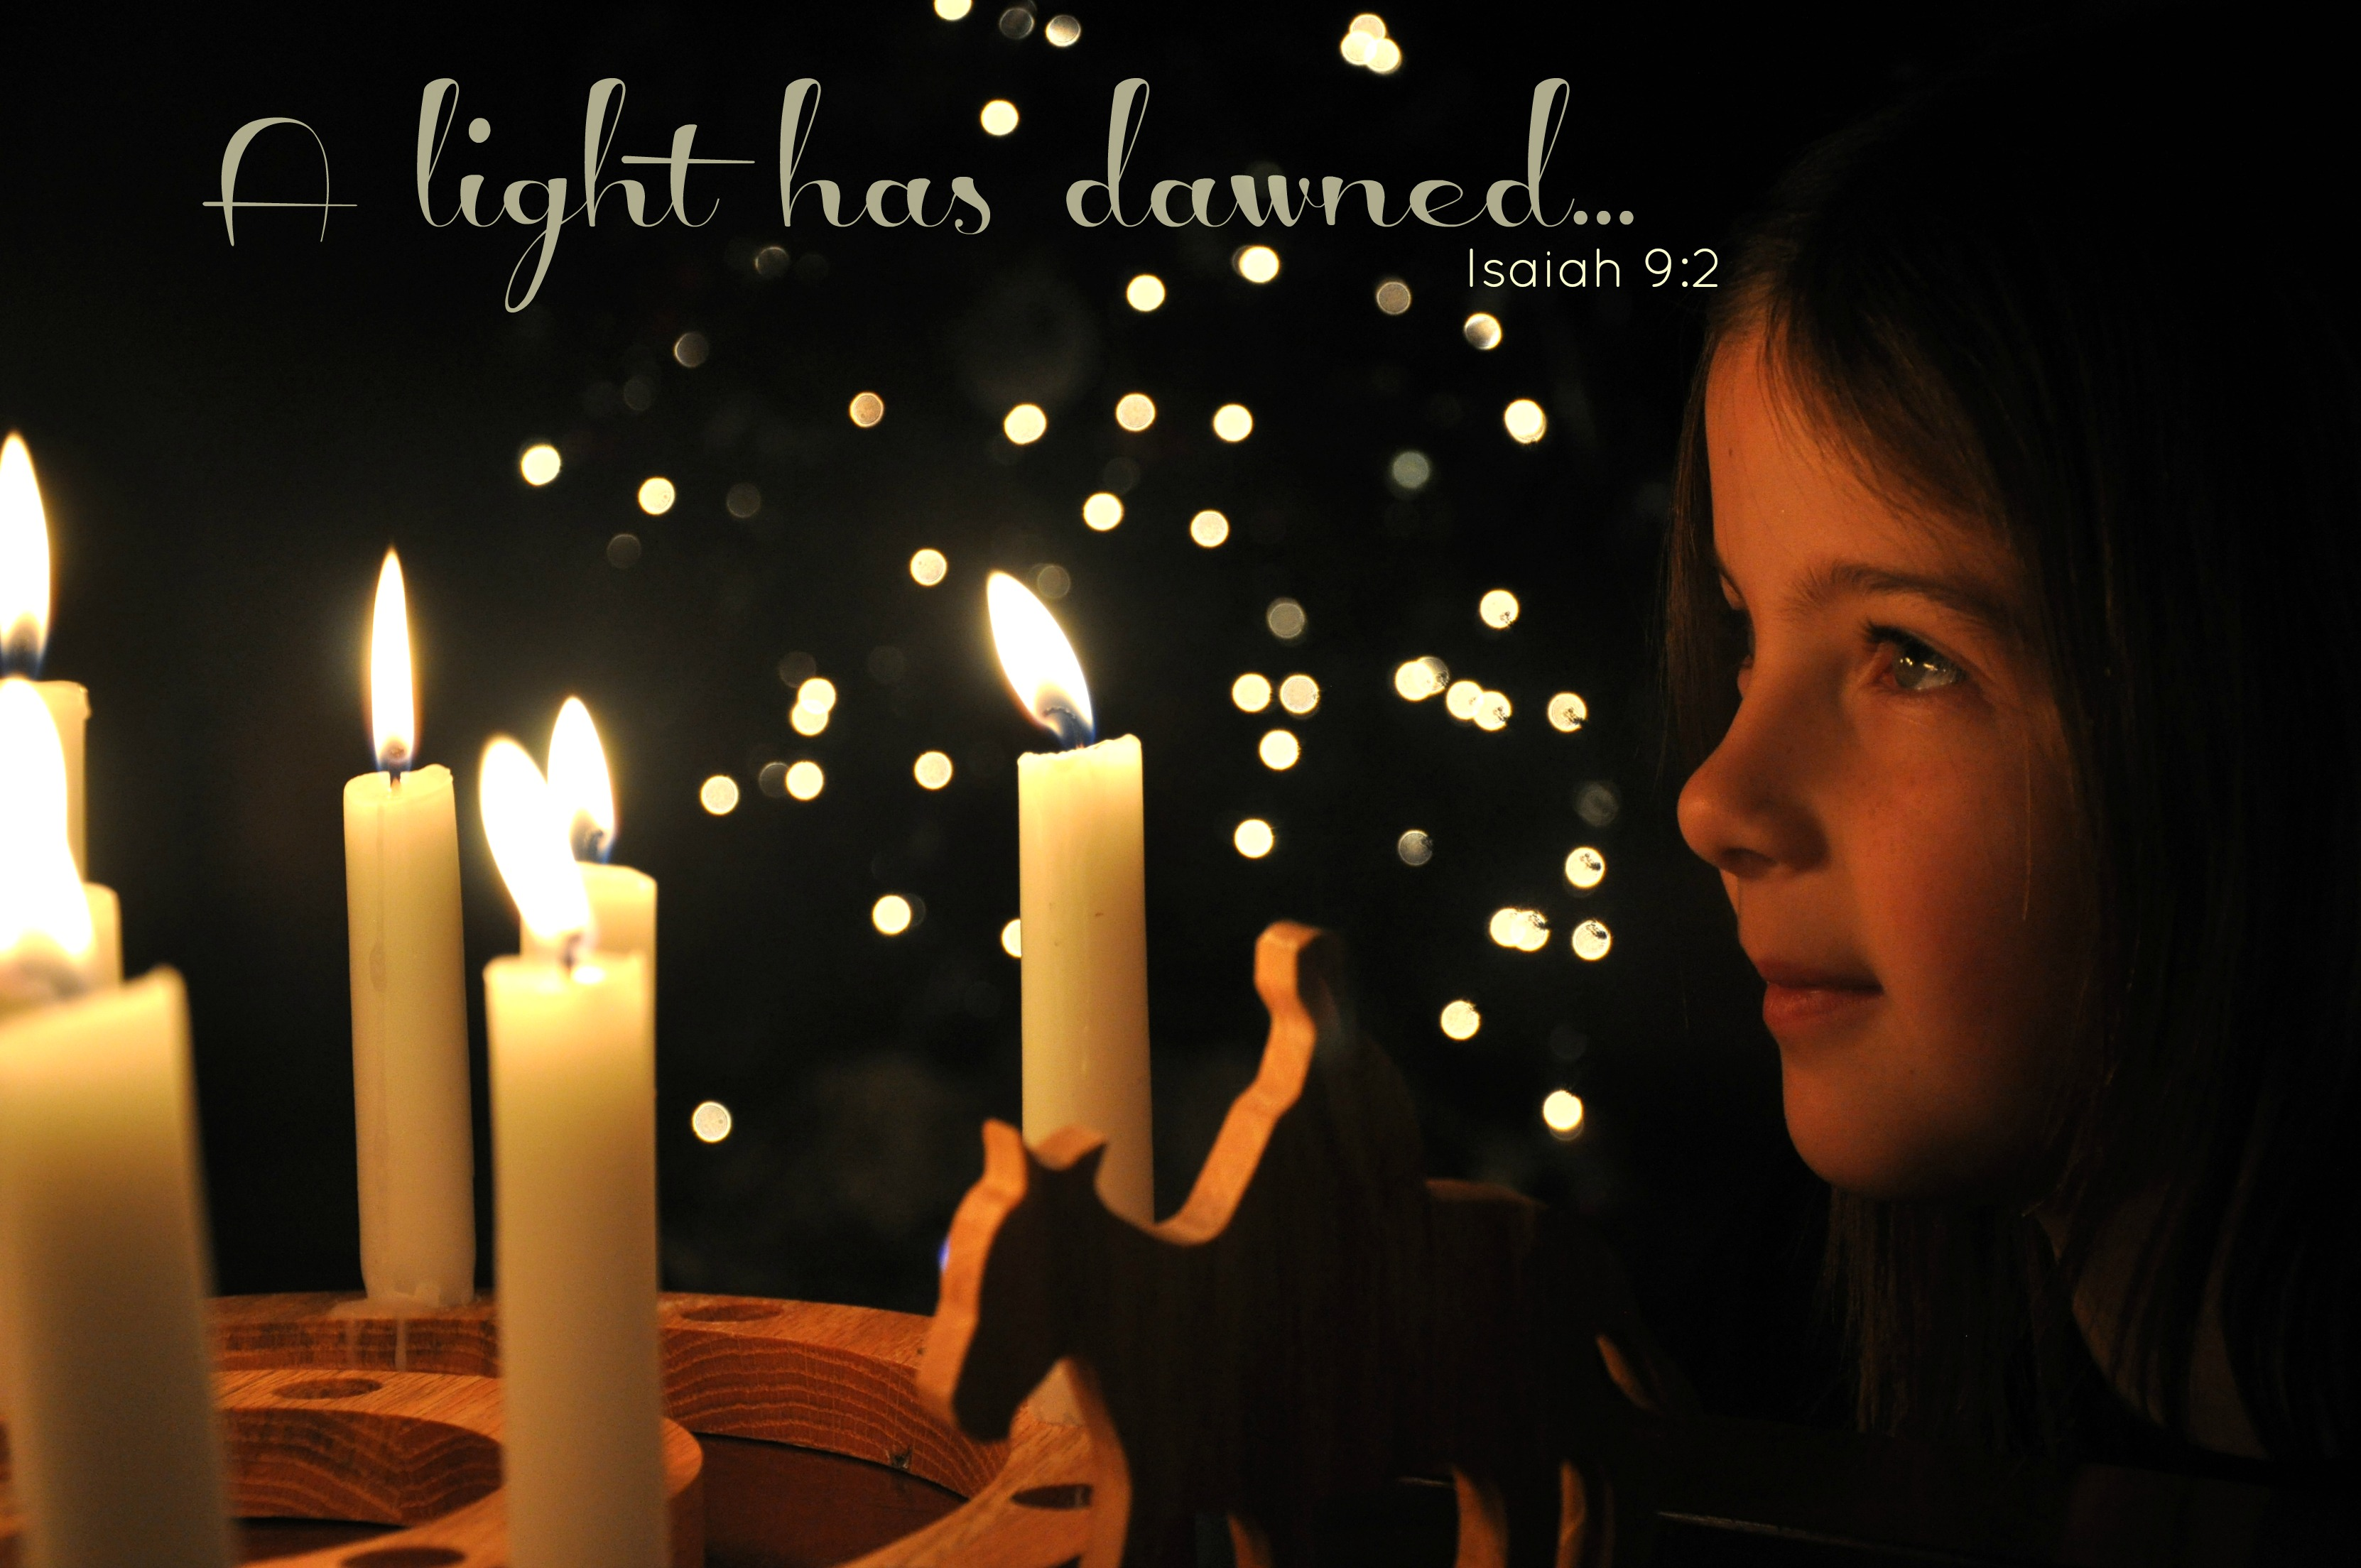 a-light-has-dawned-advent